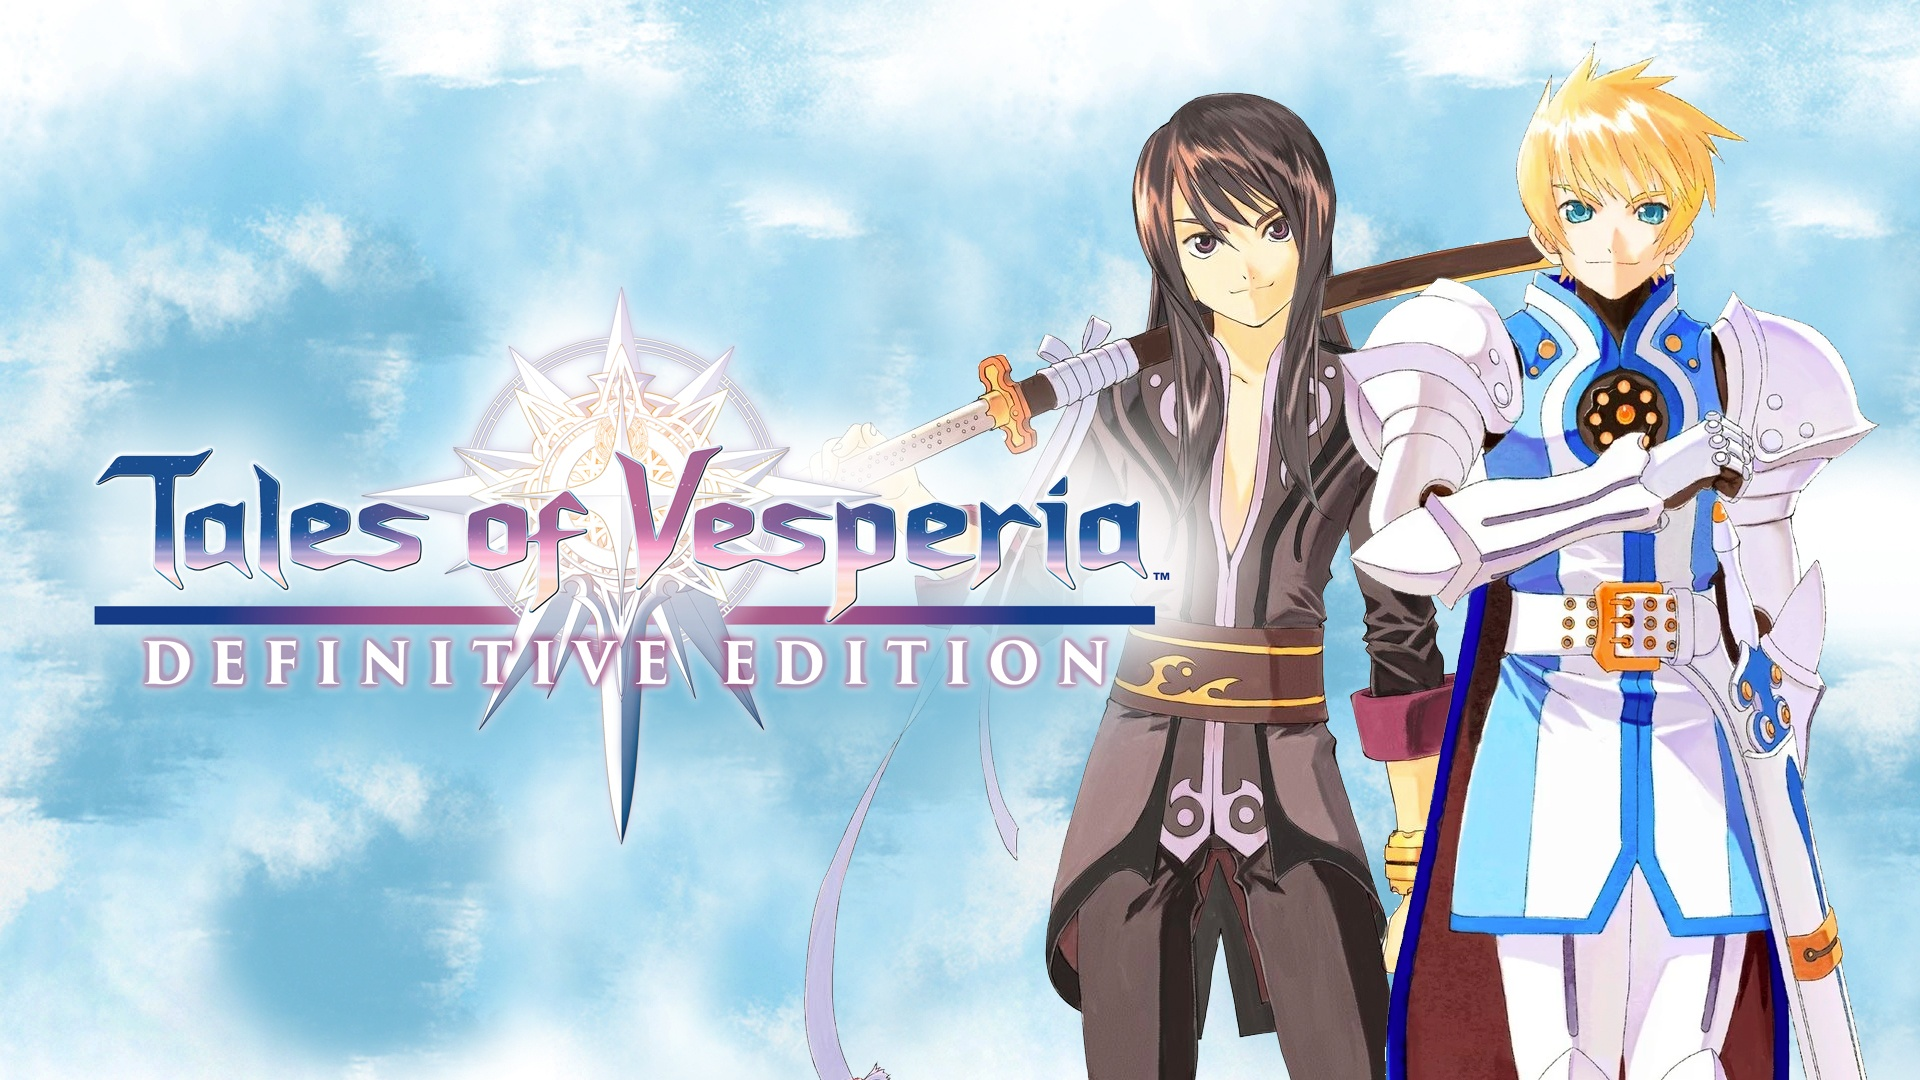 Tales of vesperia definitive edition steam dlc | Tales of